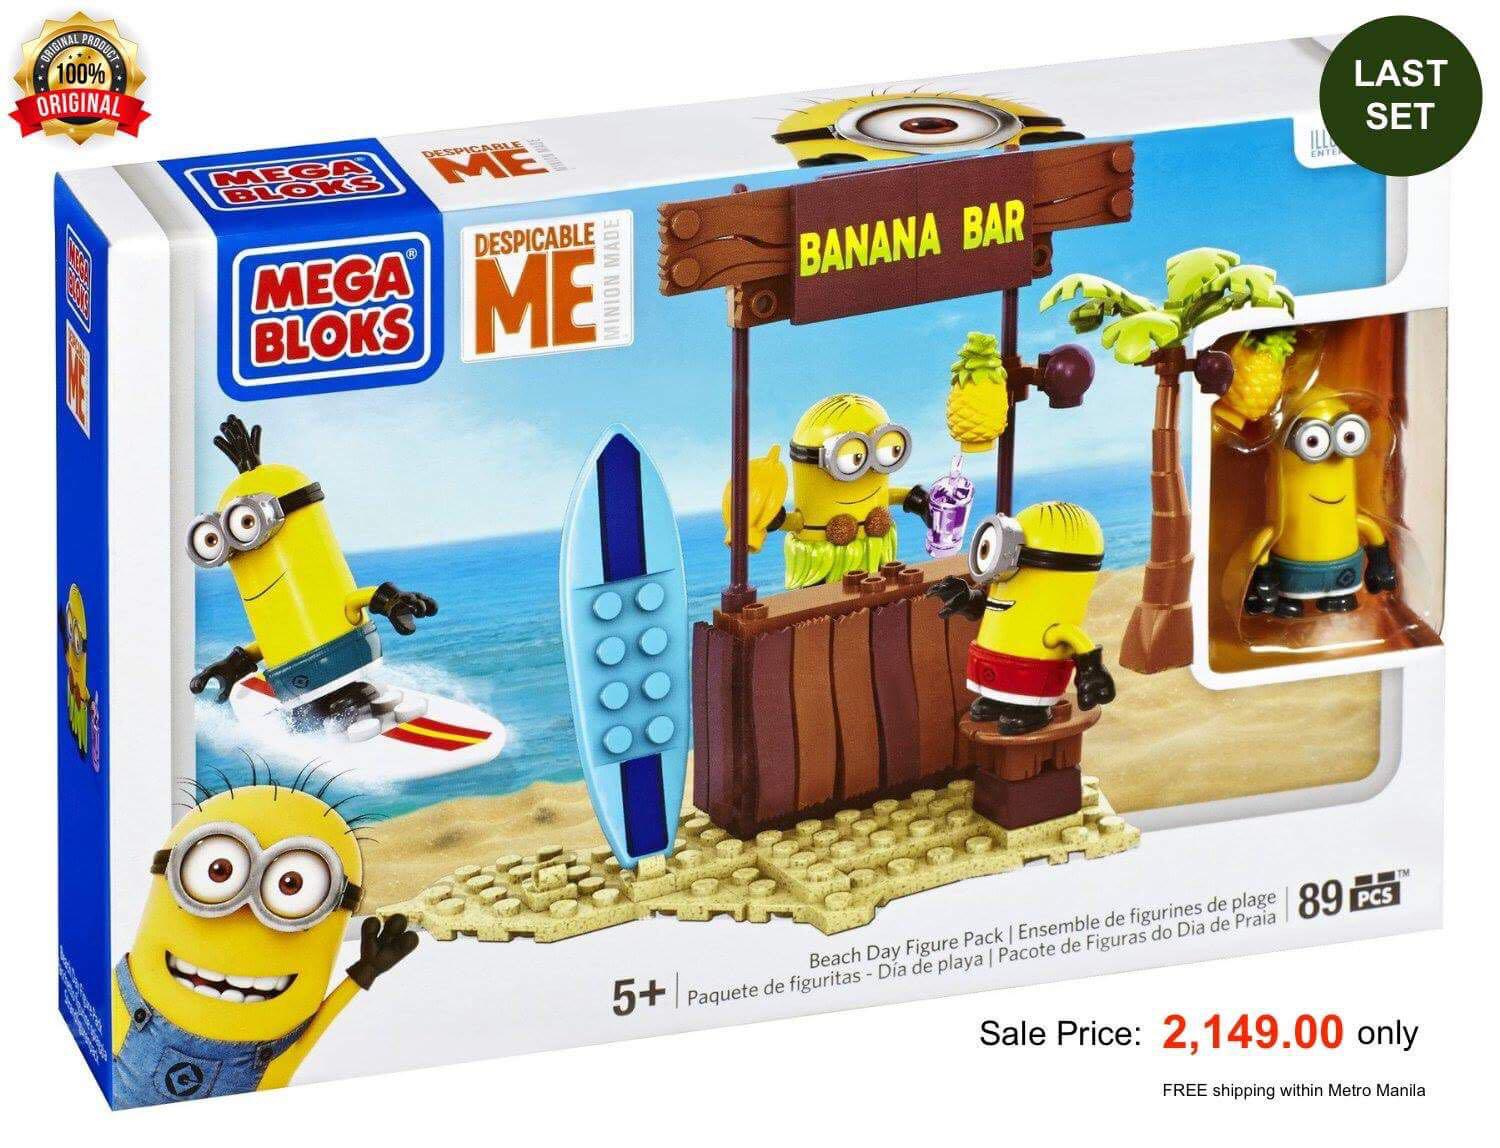 MEGA BLOKS MINION BANANA BAR